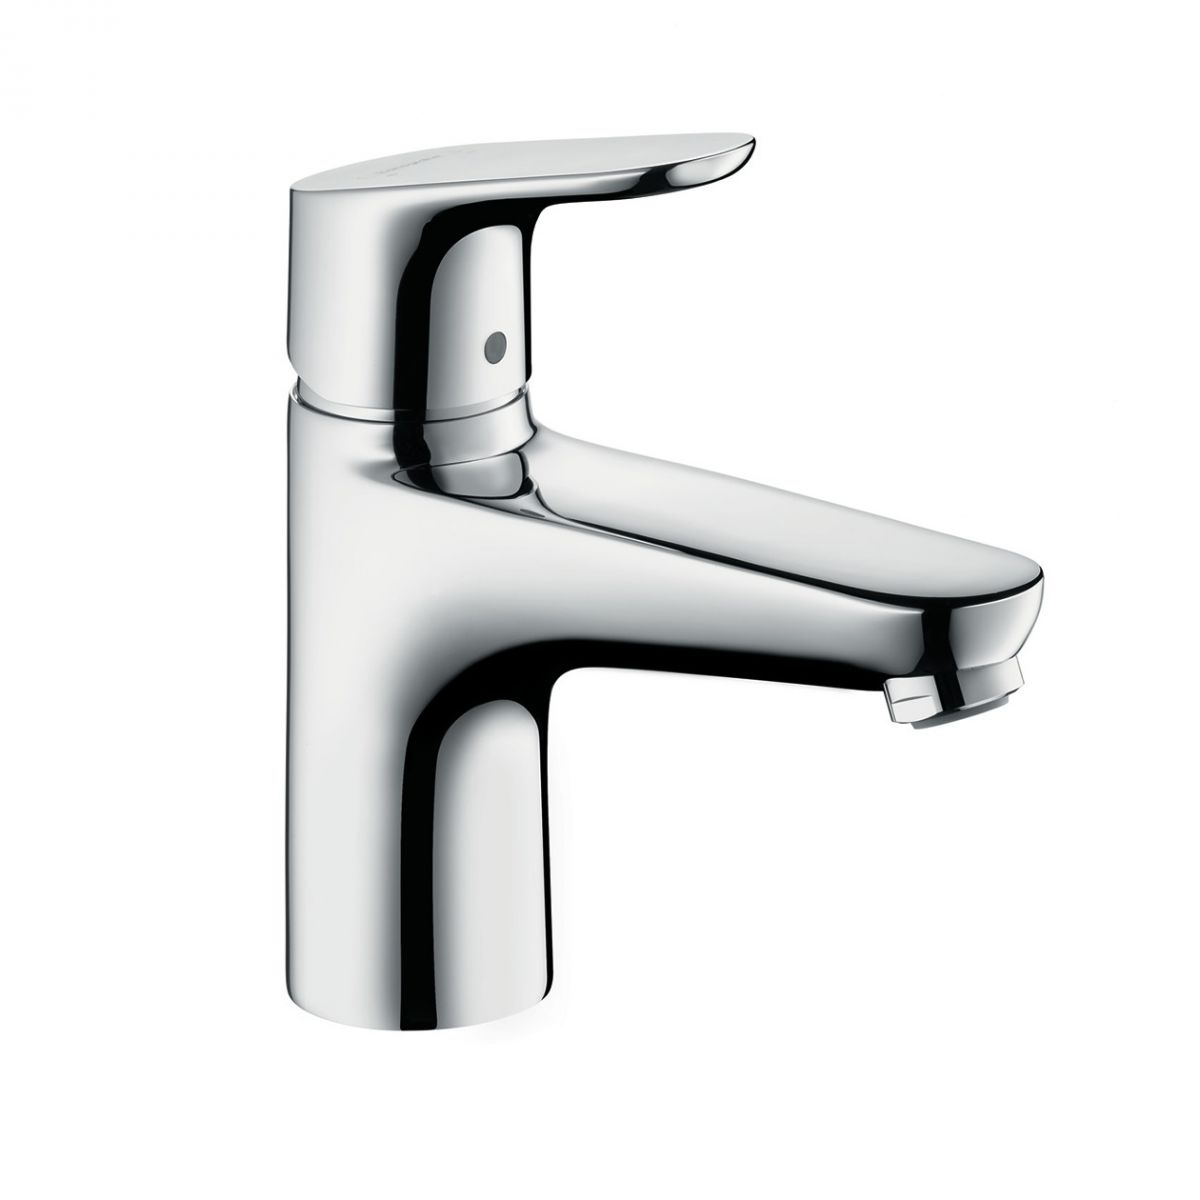 Hansgrohe Focus Monotrou Single Lever Bath Mixer Tap